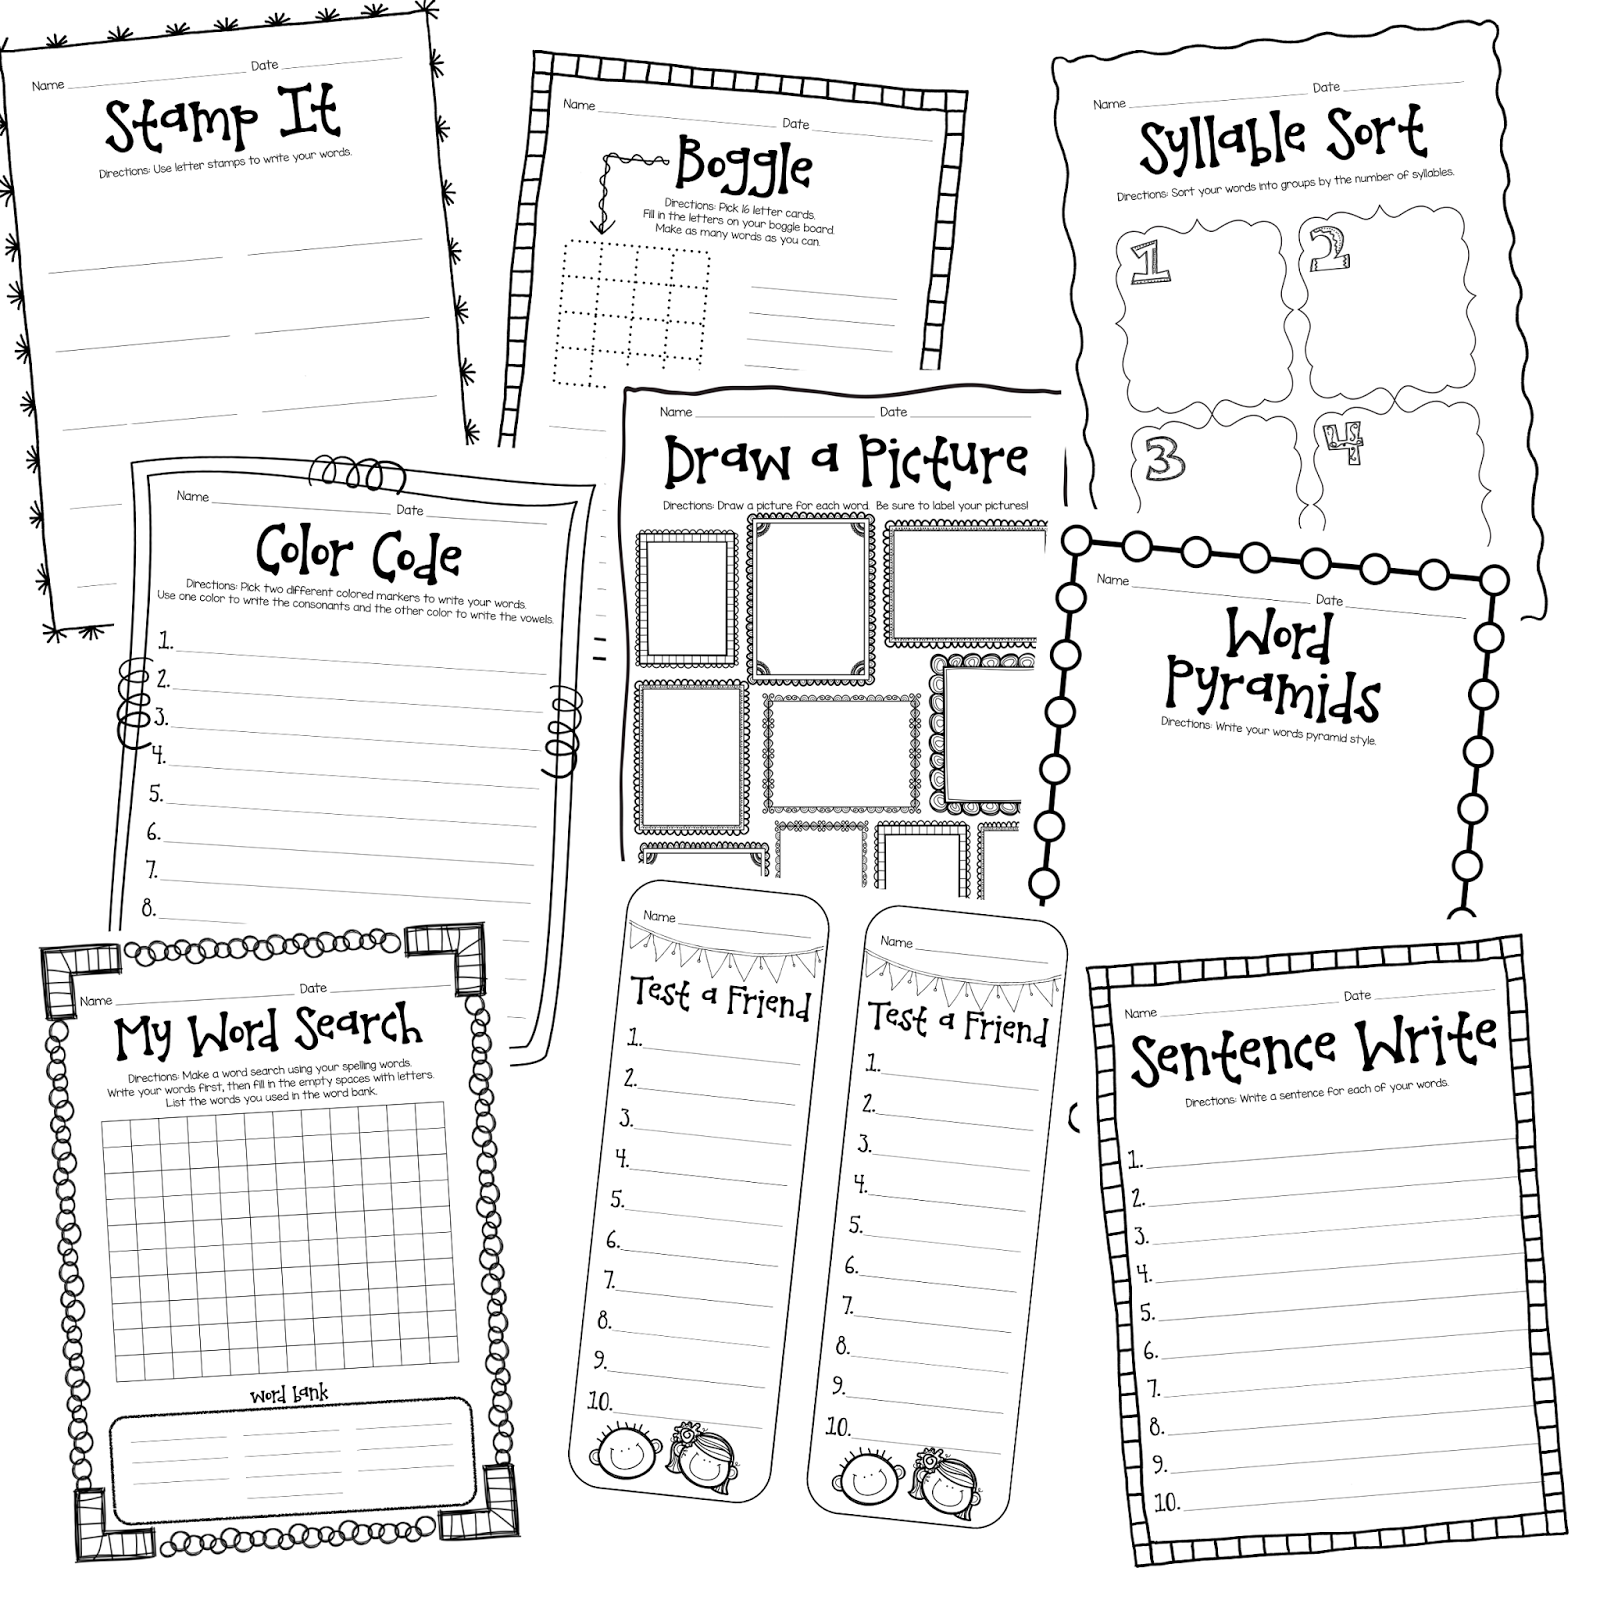 Worksheet Second Grade School Work morning work activities second grade smiling and shining in math worksheet word worksheets for kids teachers activities